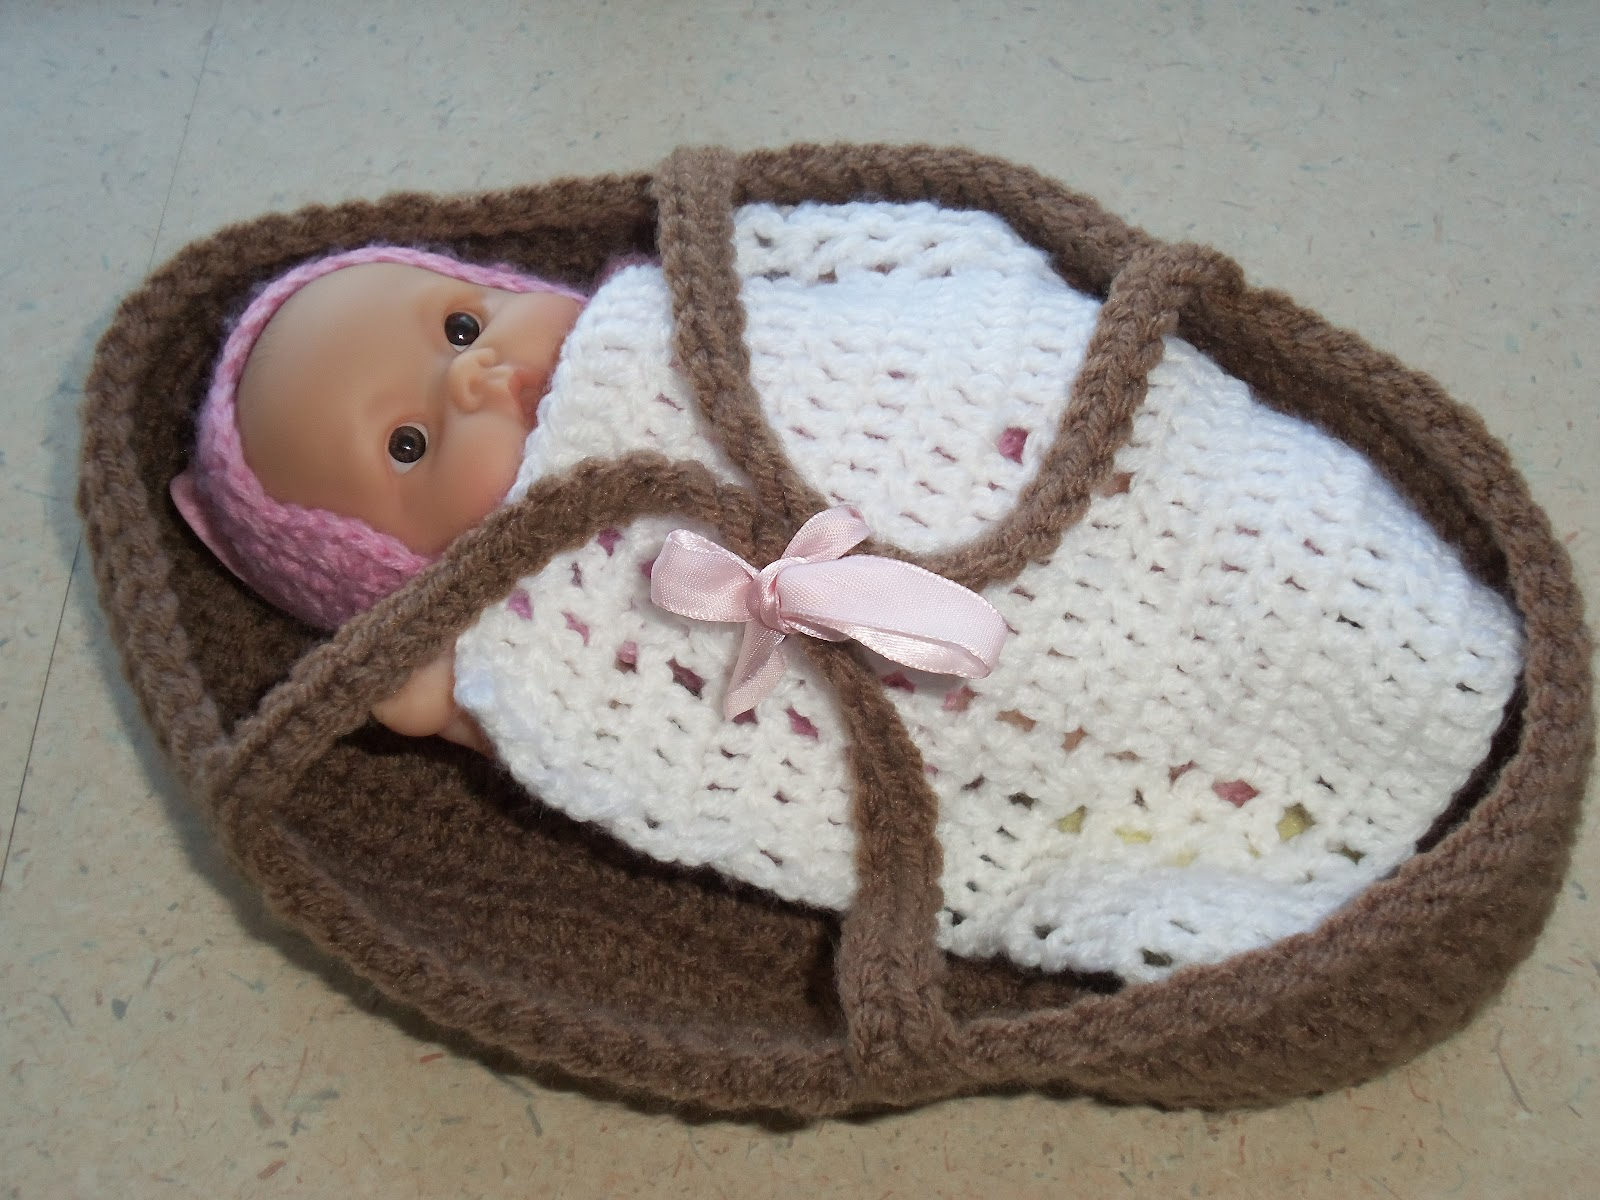 Knitting Pattern For Doll Carrier : MyJCLibrary KnitCrochet: Hot Crocheted Item